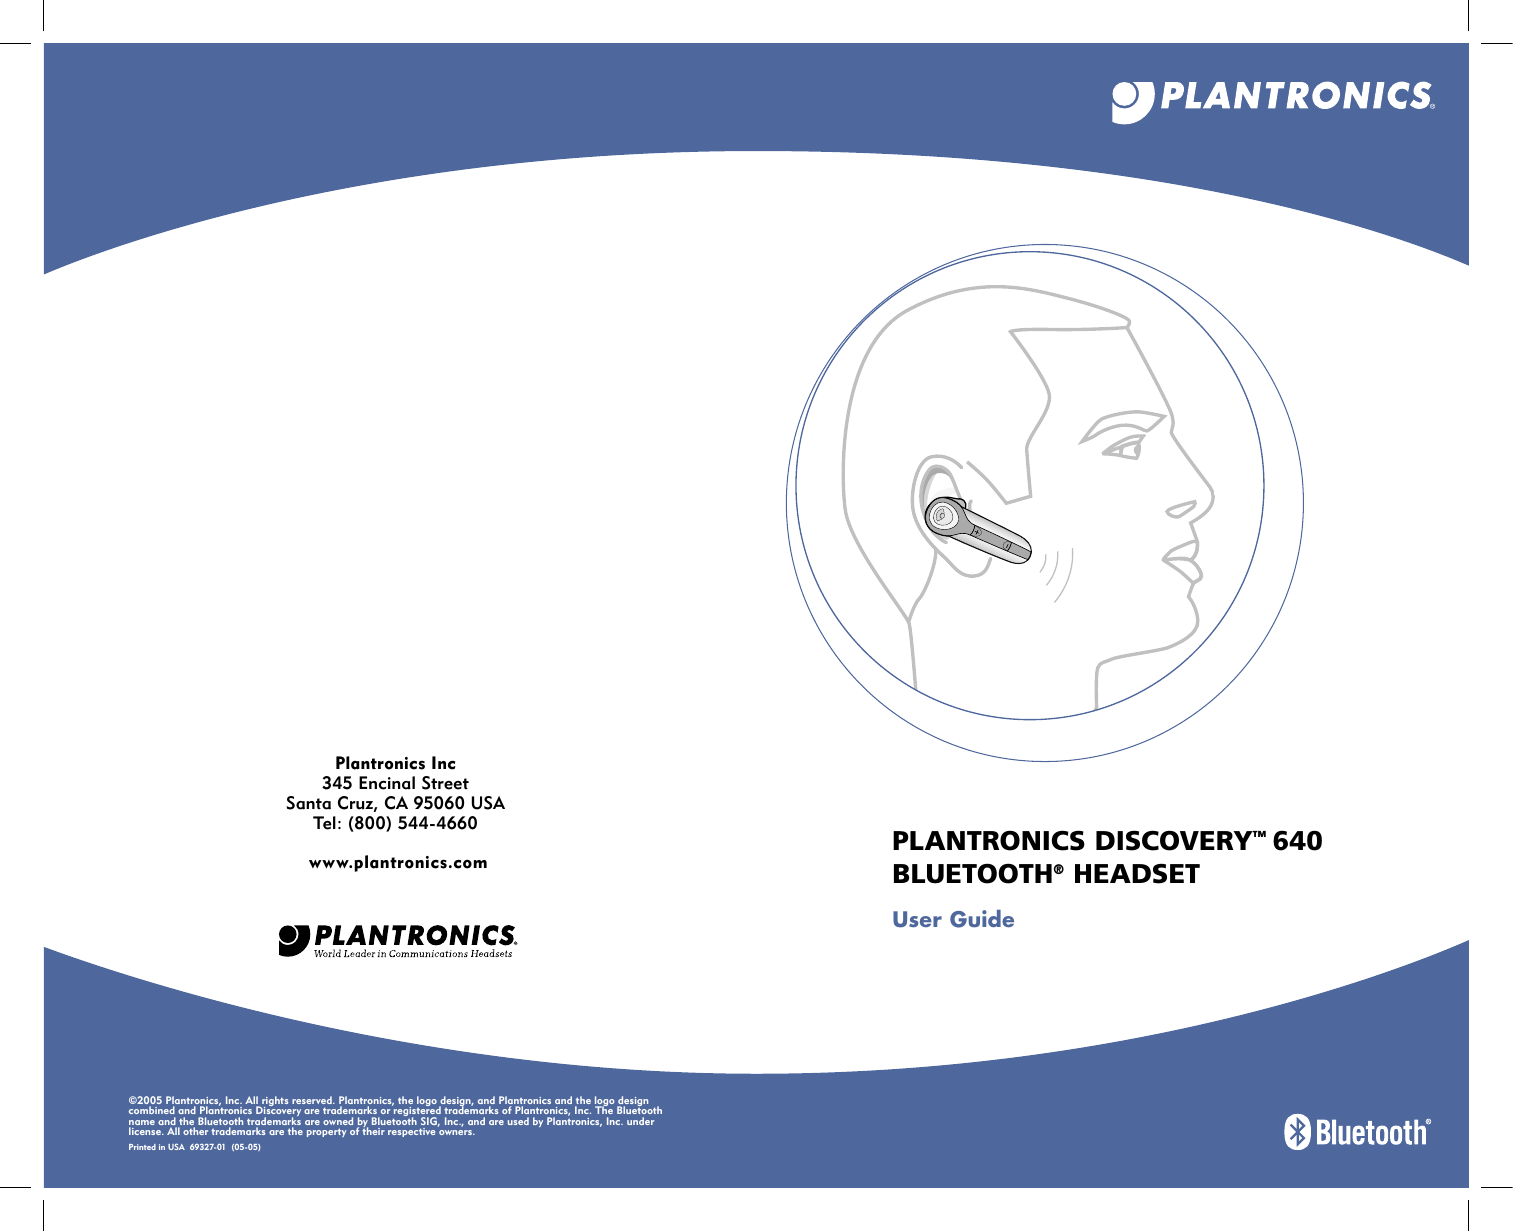 Plantronics D640 Bluetooth Headset User Manual Discovery Ug Indd